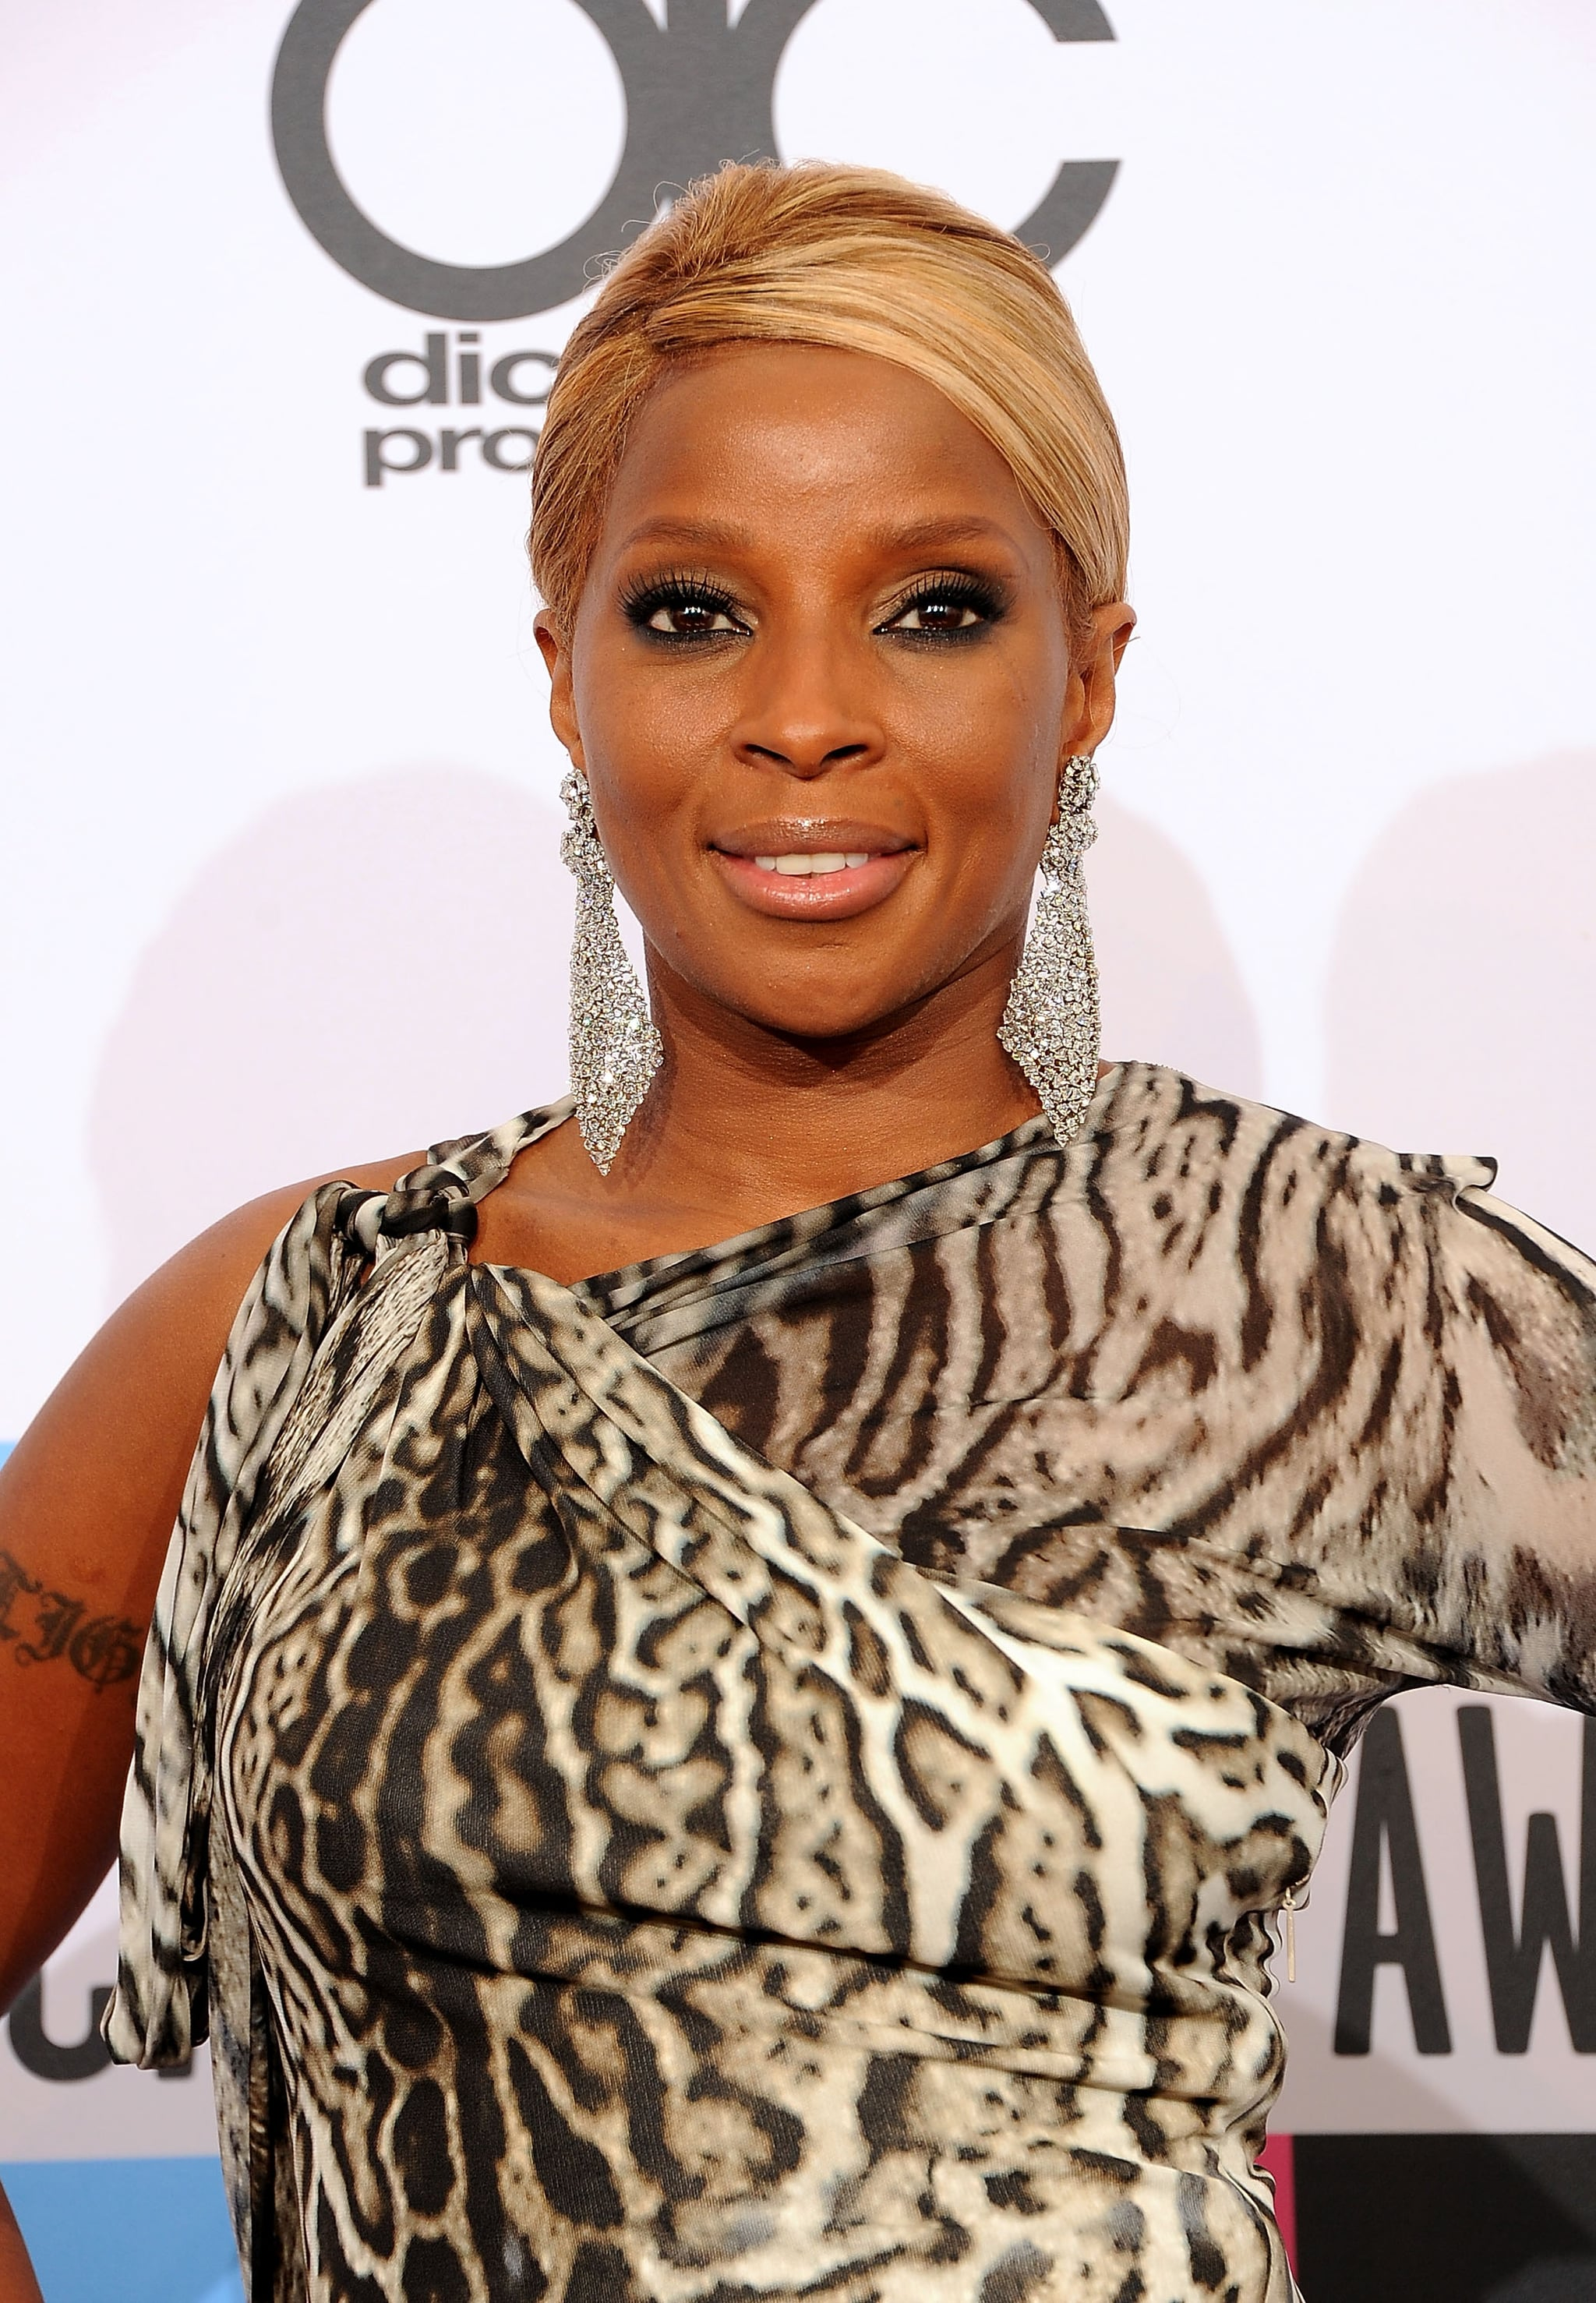 Mary J. Blige smiled for the cameras.